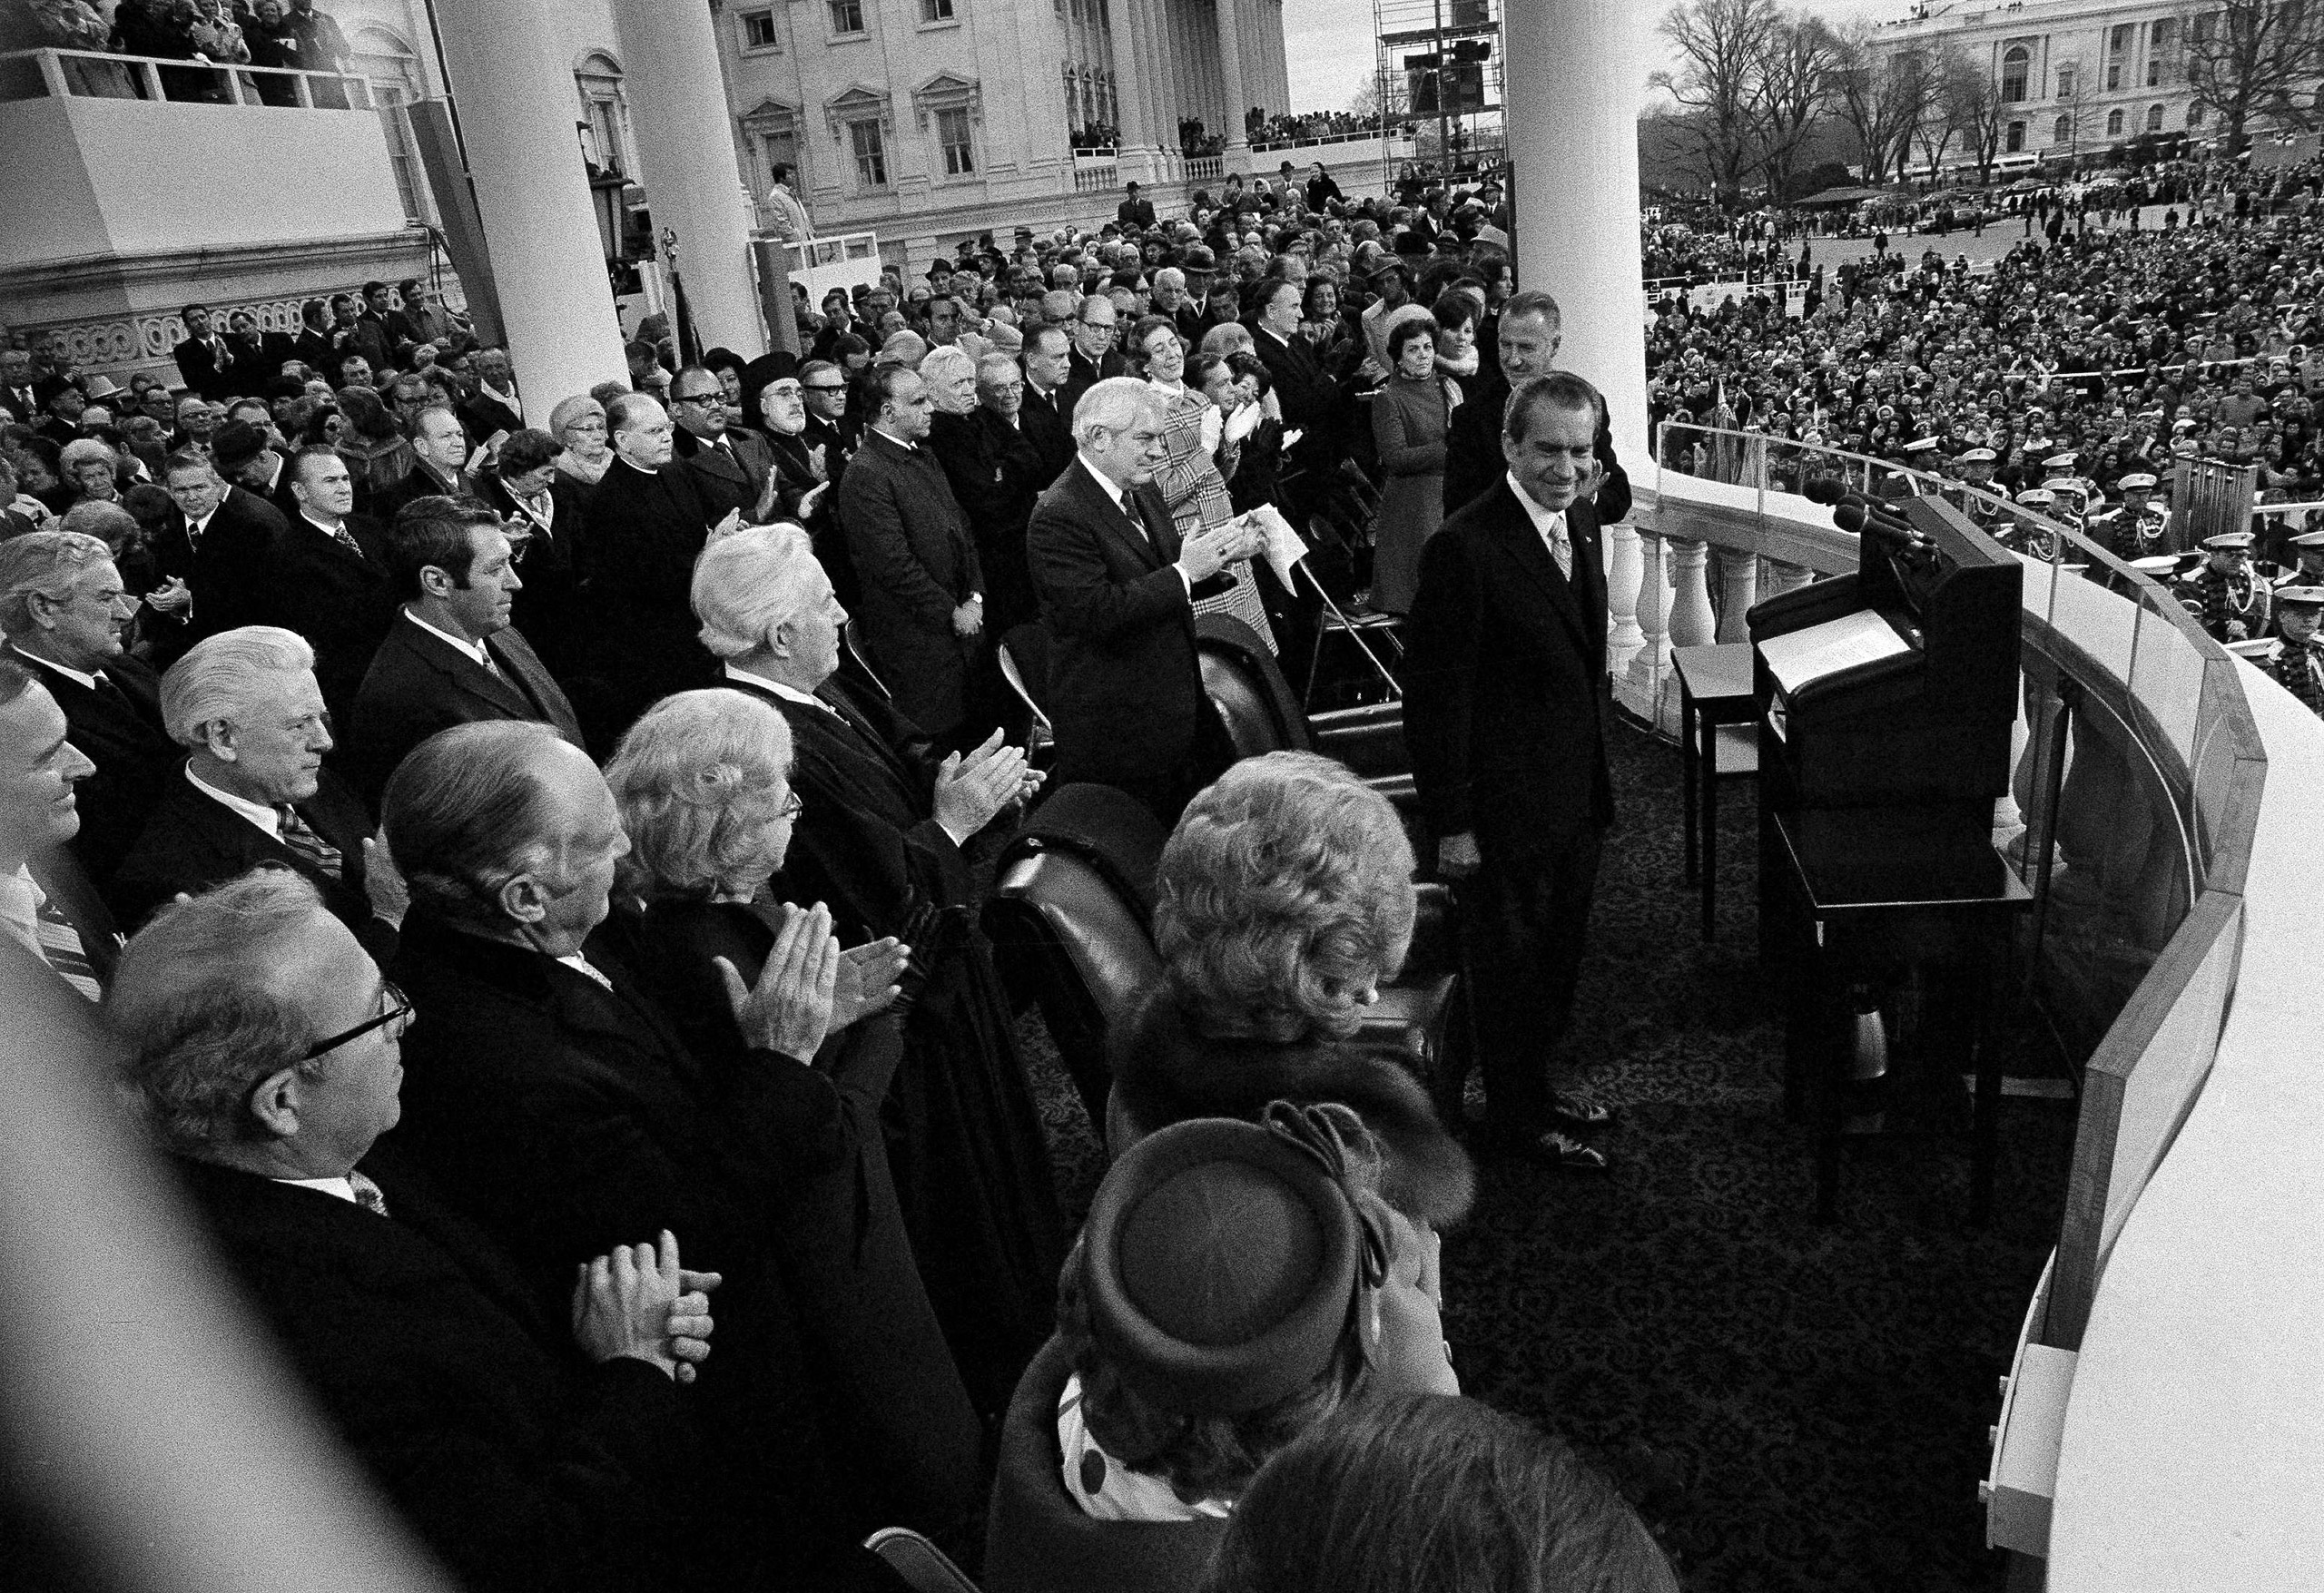 President Richard Nixon acknowledges the applause after delivering his inaugural address during his second inauguration at the Capitol in Washington, D.C., Jan. 20, 1973.